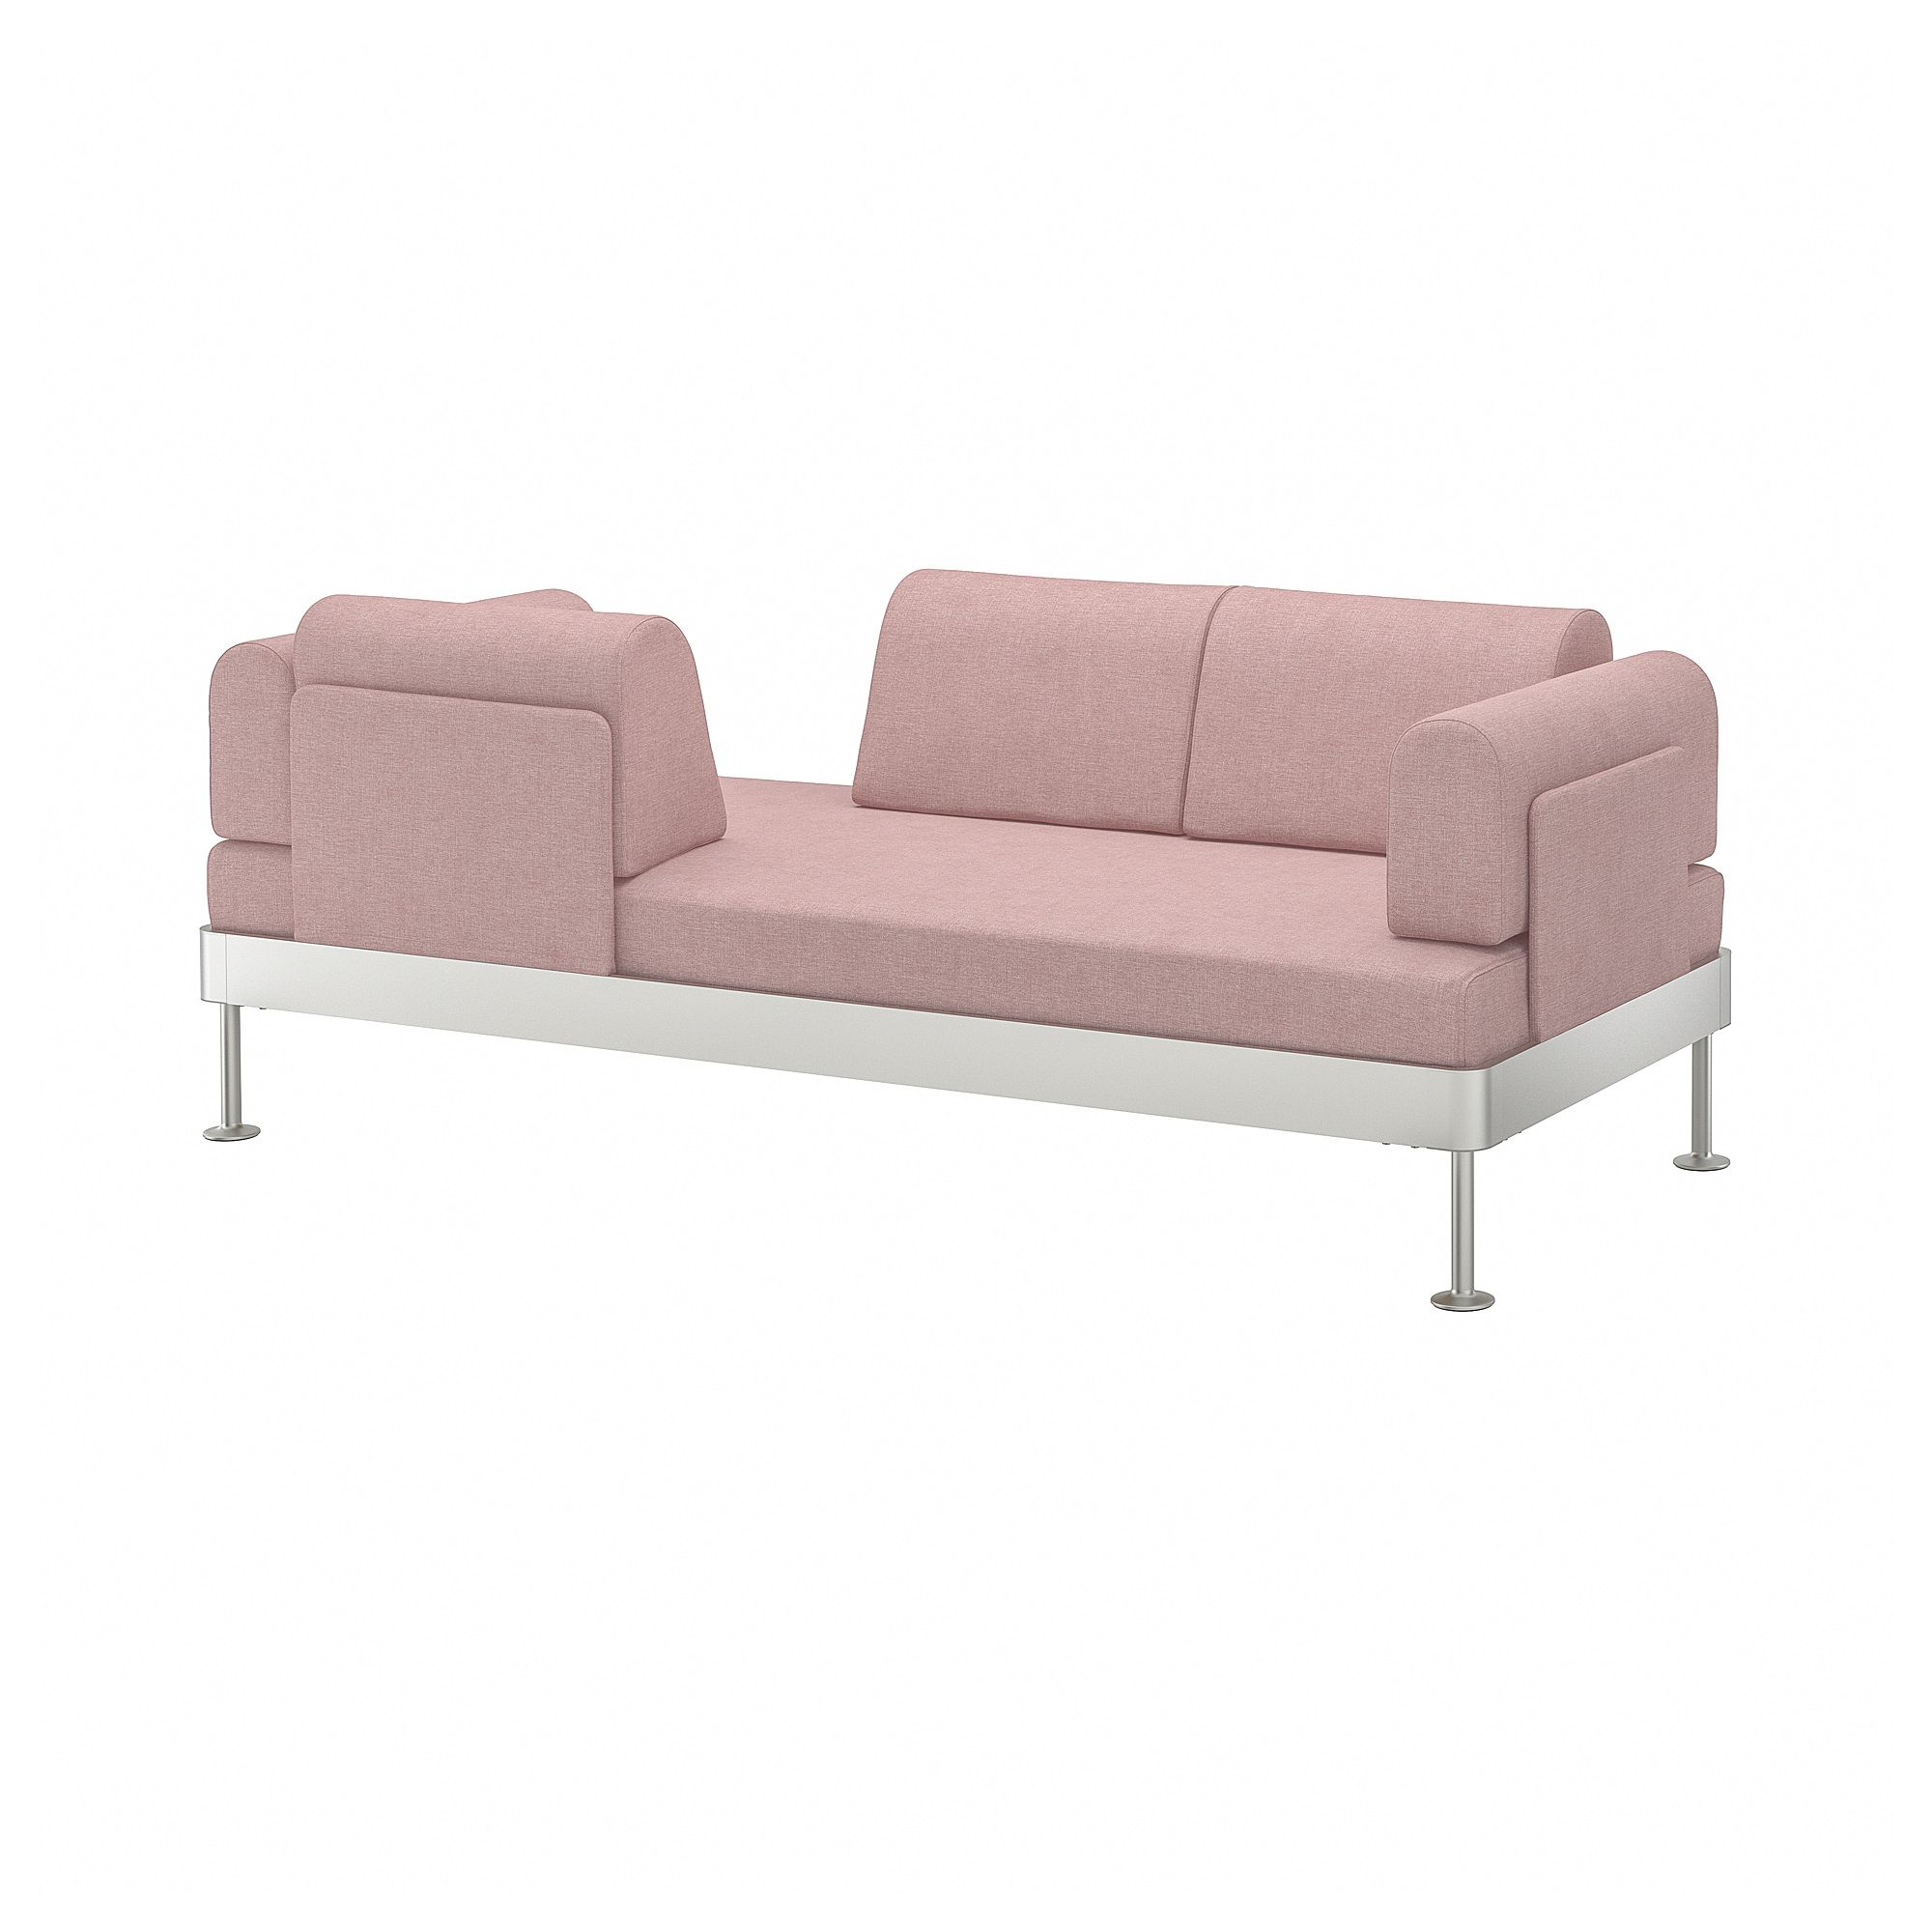 Furniture Home Furnishings Find Your Inspiration Sofa